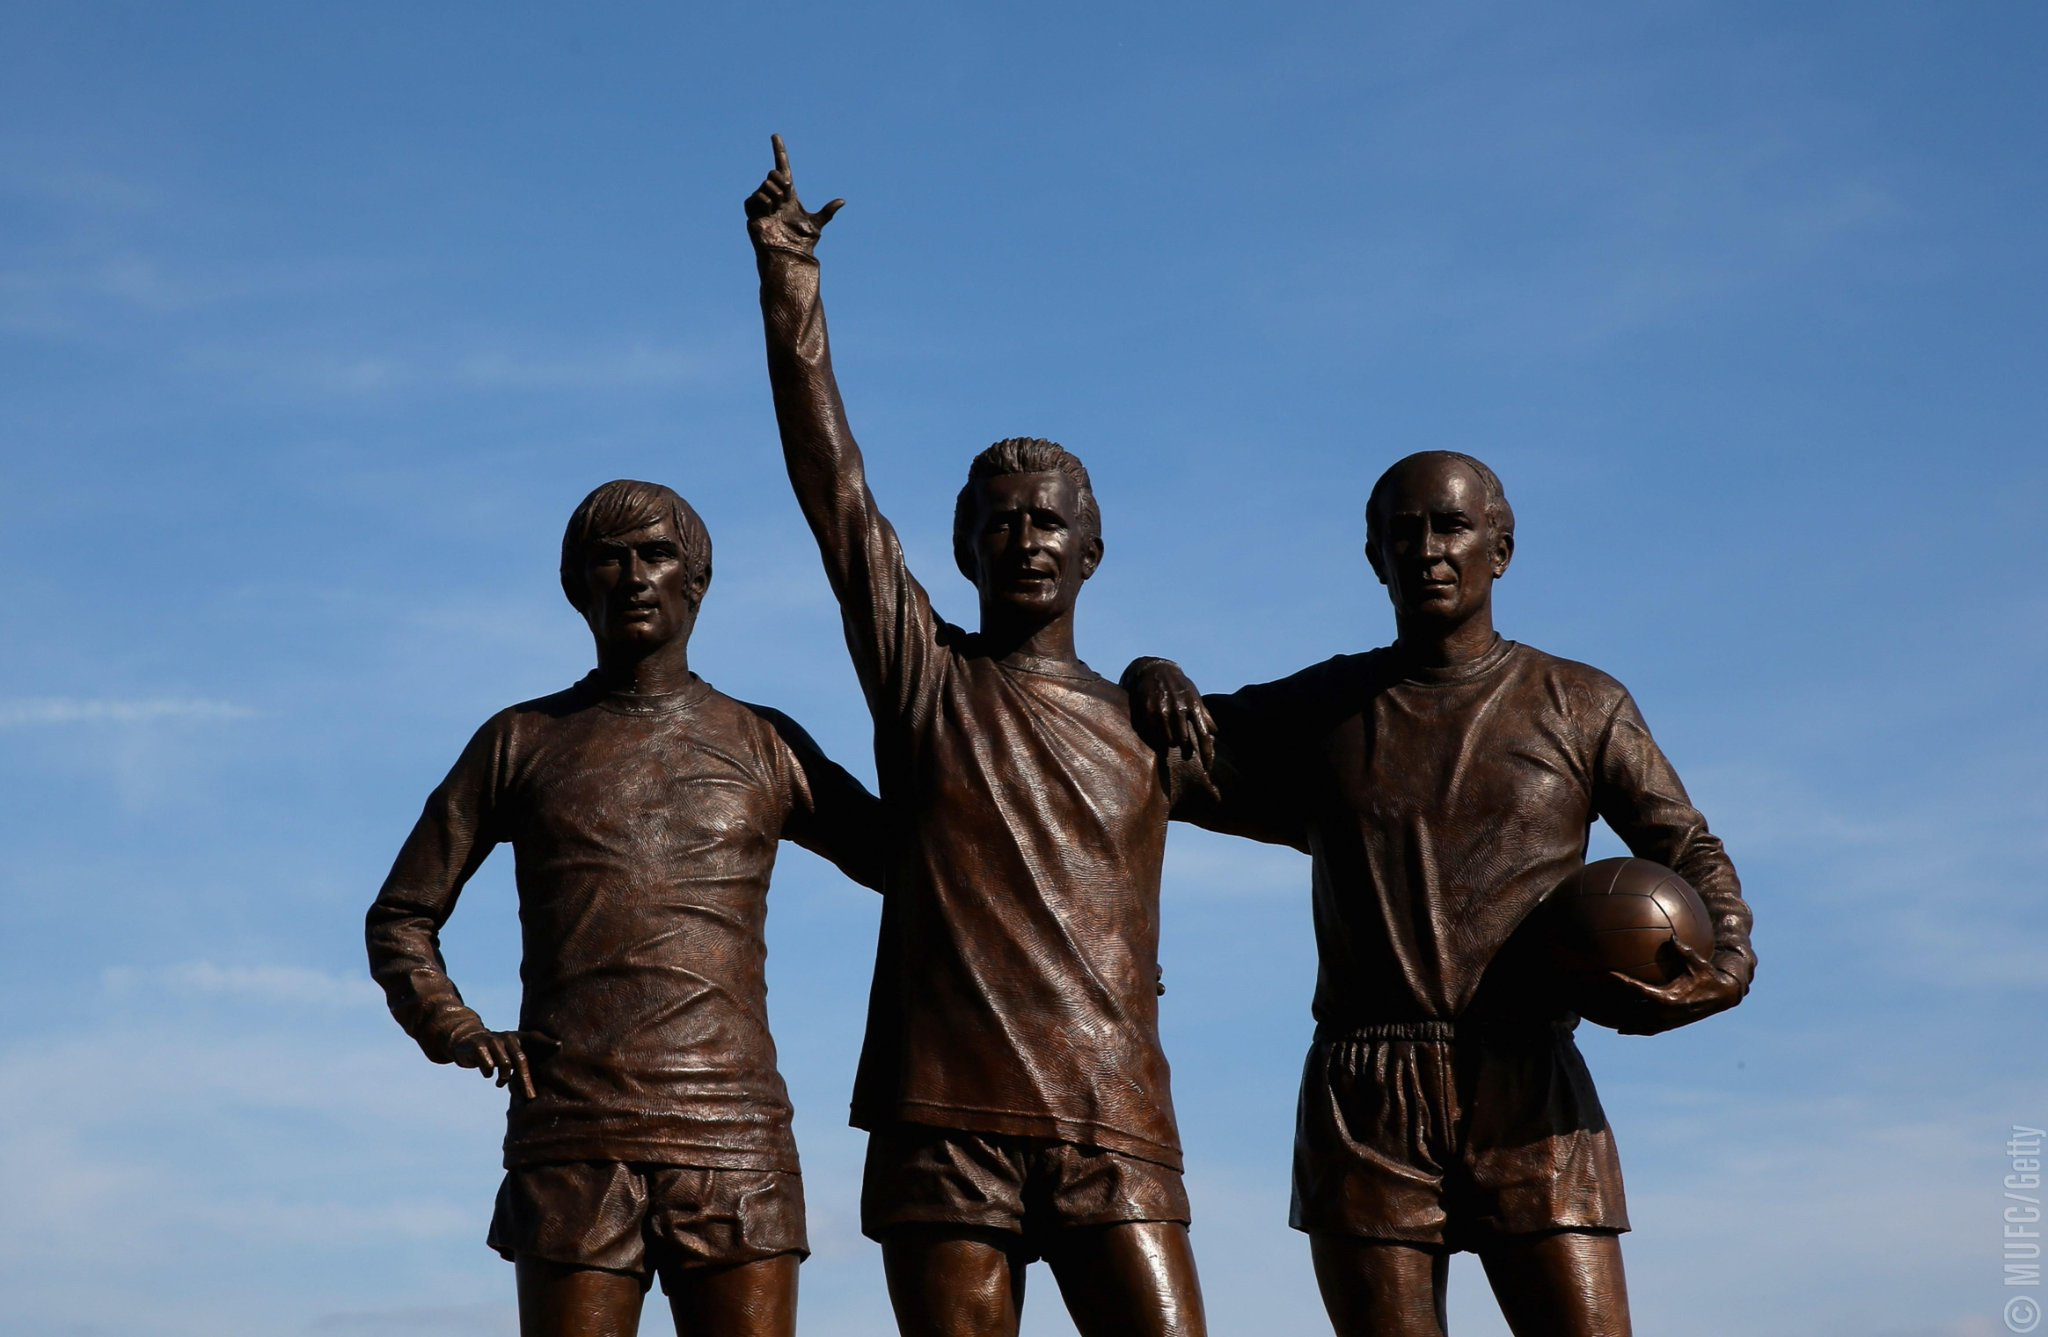 On this day in 1964, #MUFC's Trinity played together for the very first time... https://t.co/RiOdBSd8AL